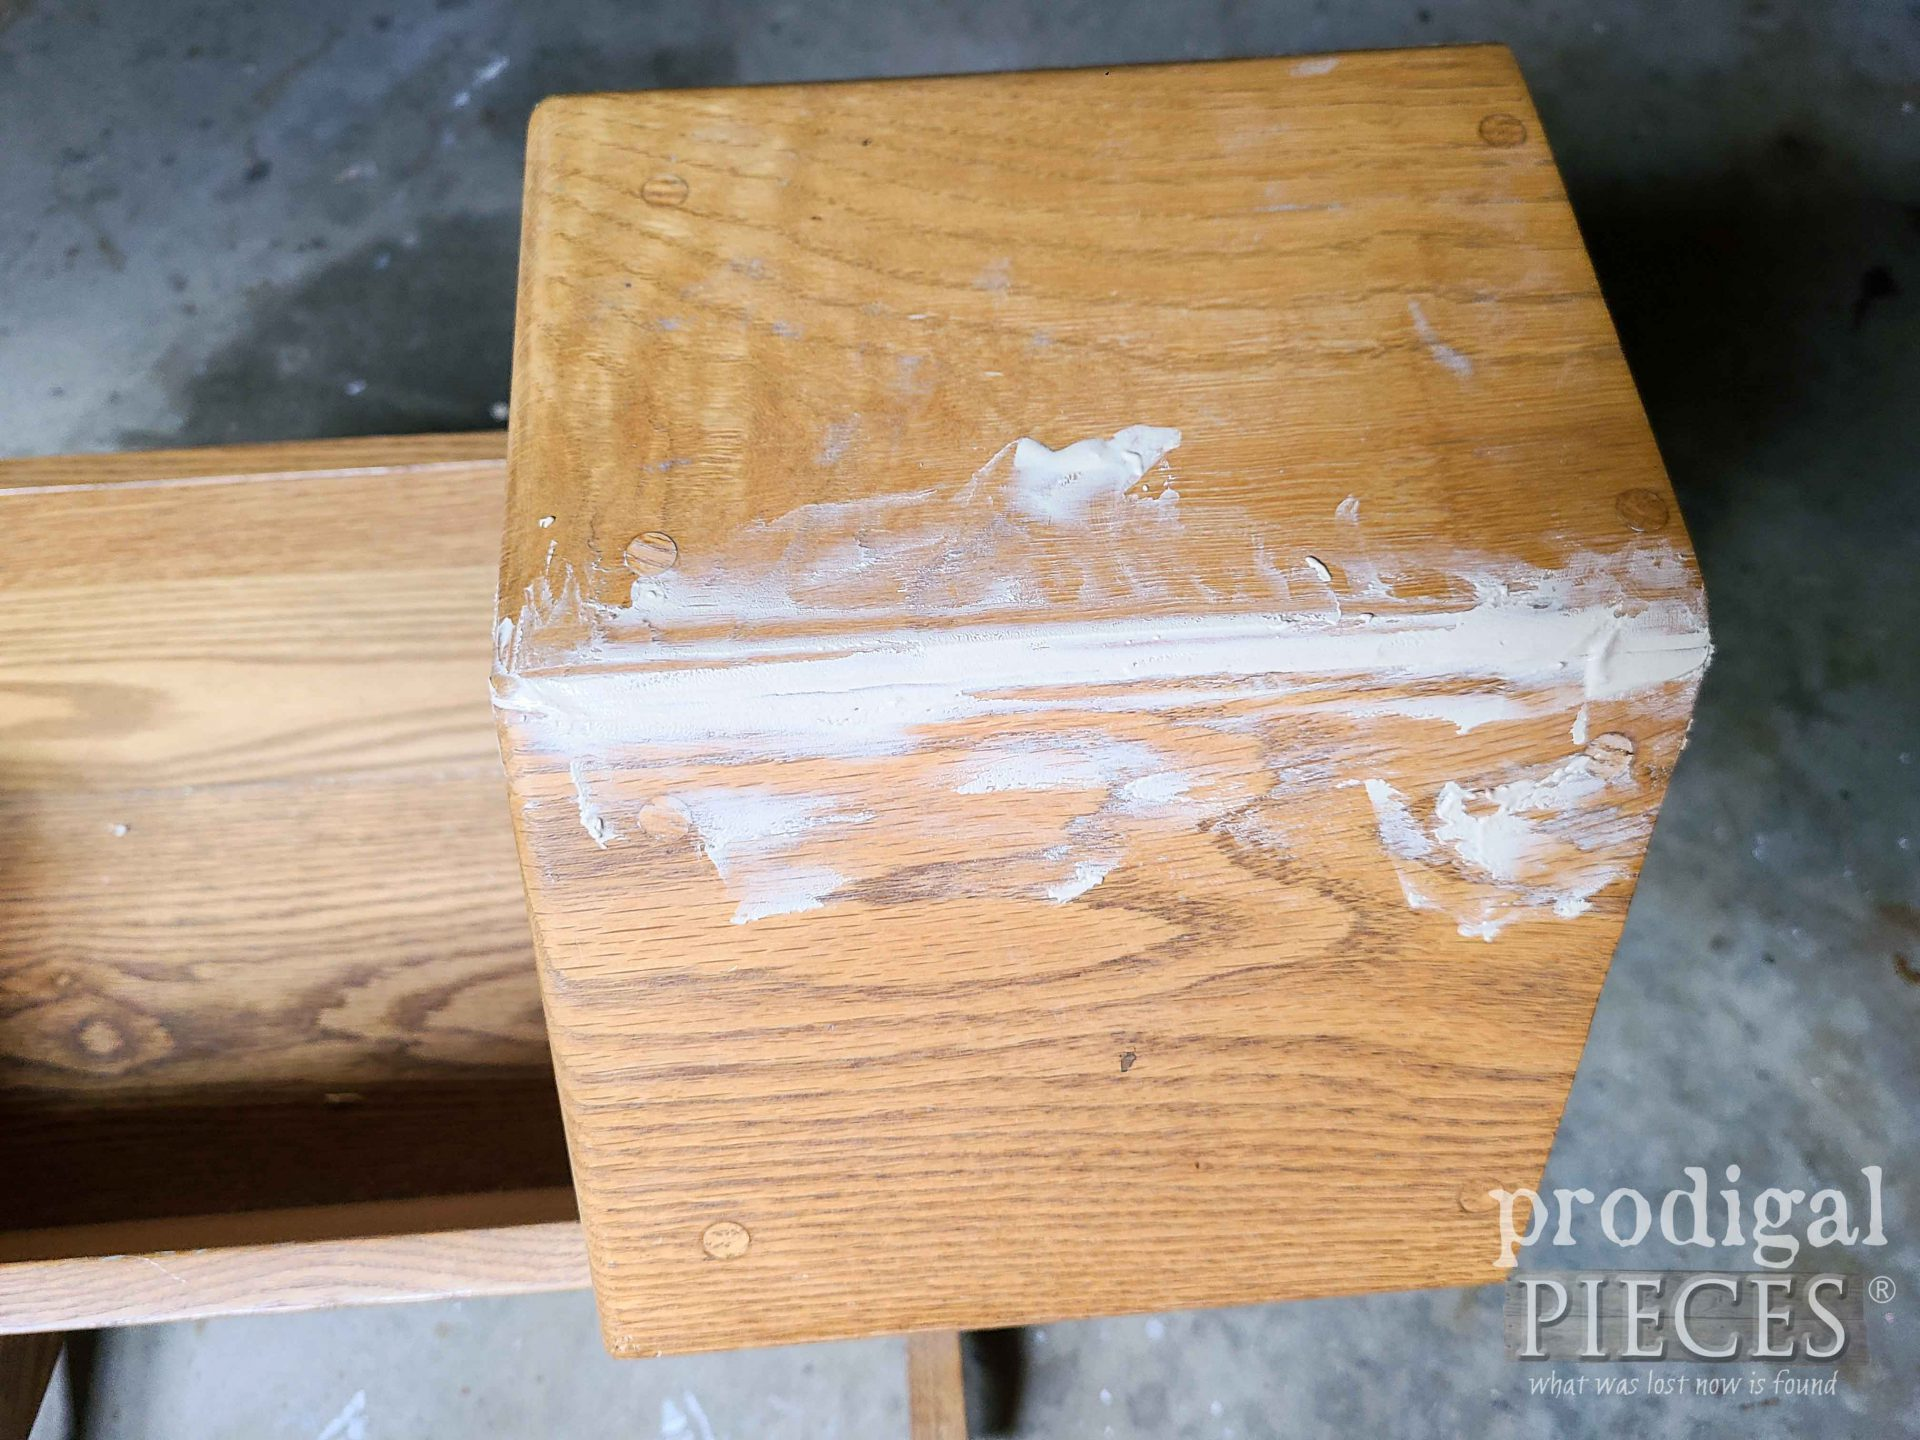 Puttied Split Wood filled with Wood Filler | prodigalpieces.com